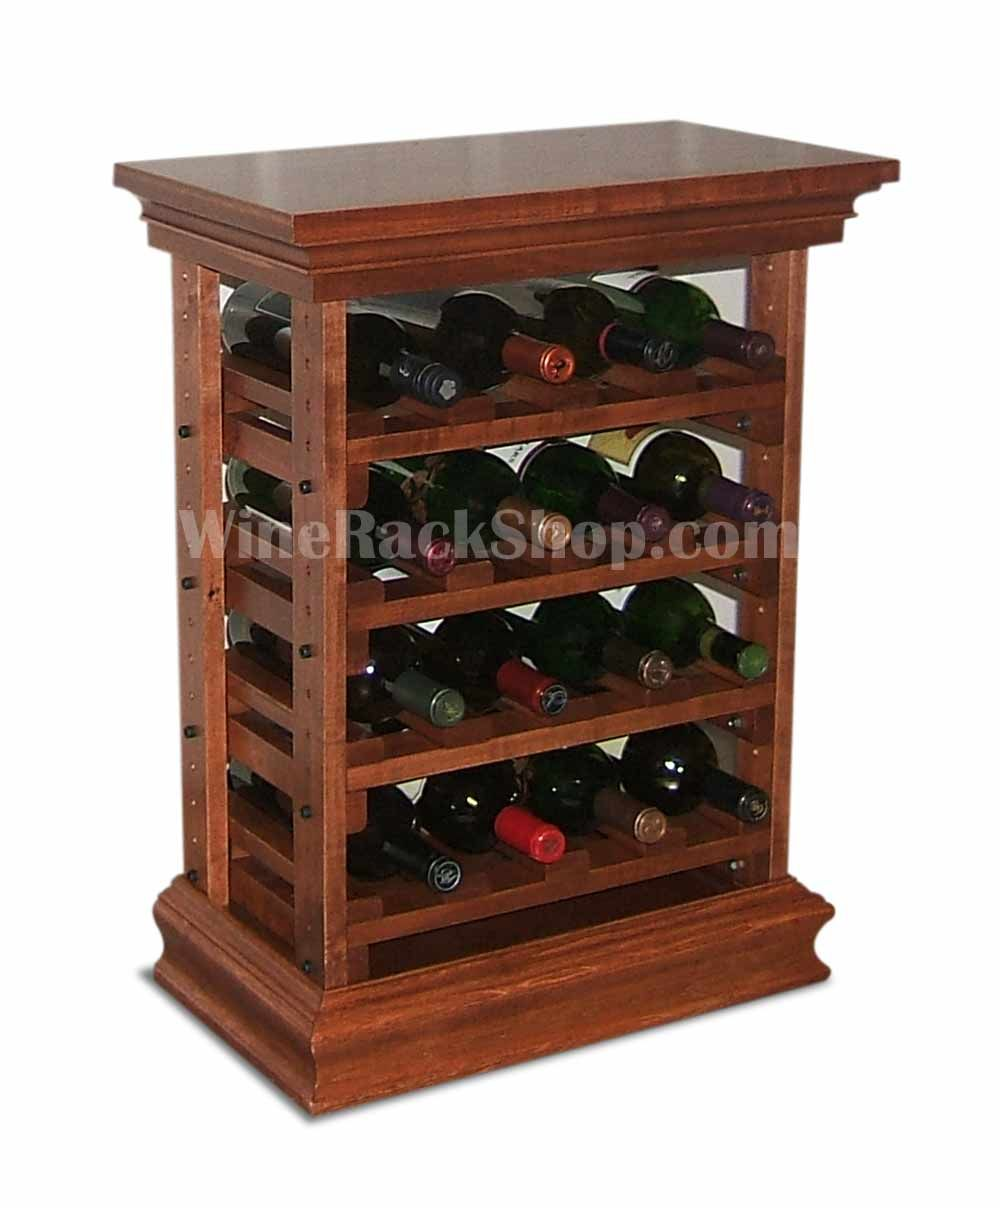 Small Wood Wine Rack With Top And Baseboard Shown Here In Cherry Finish Ideal For That Small Space Wood Wine Racks Wine Rack Wooden Wine Rack